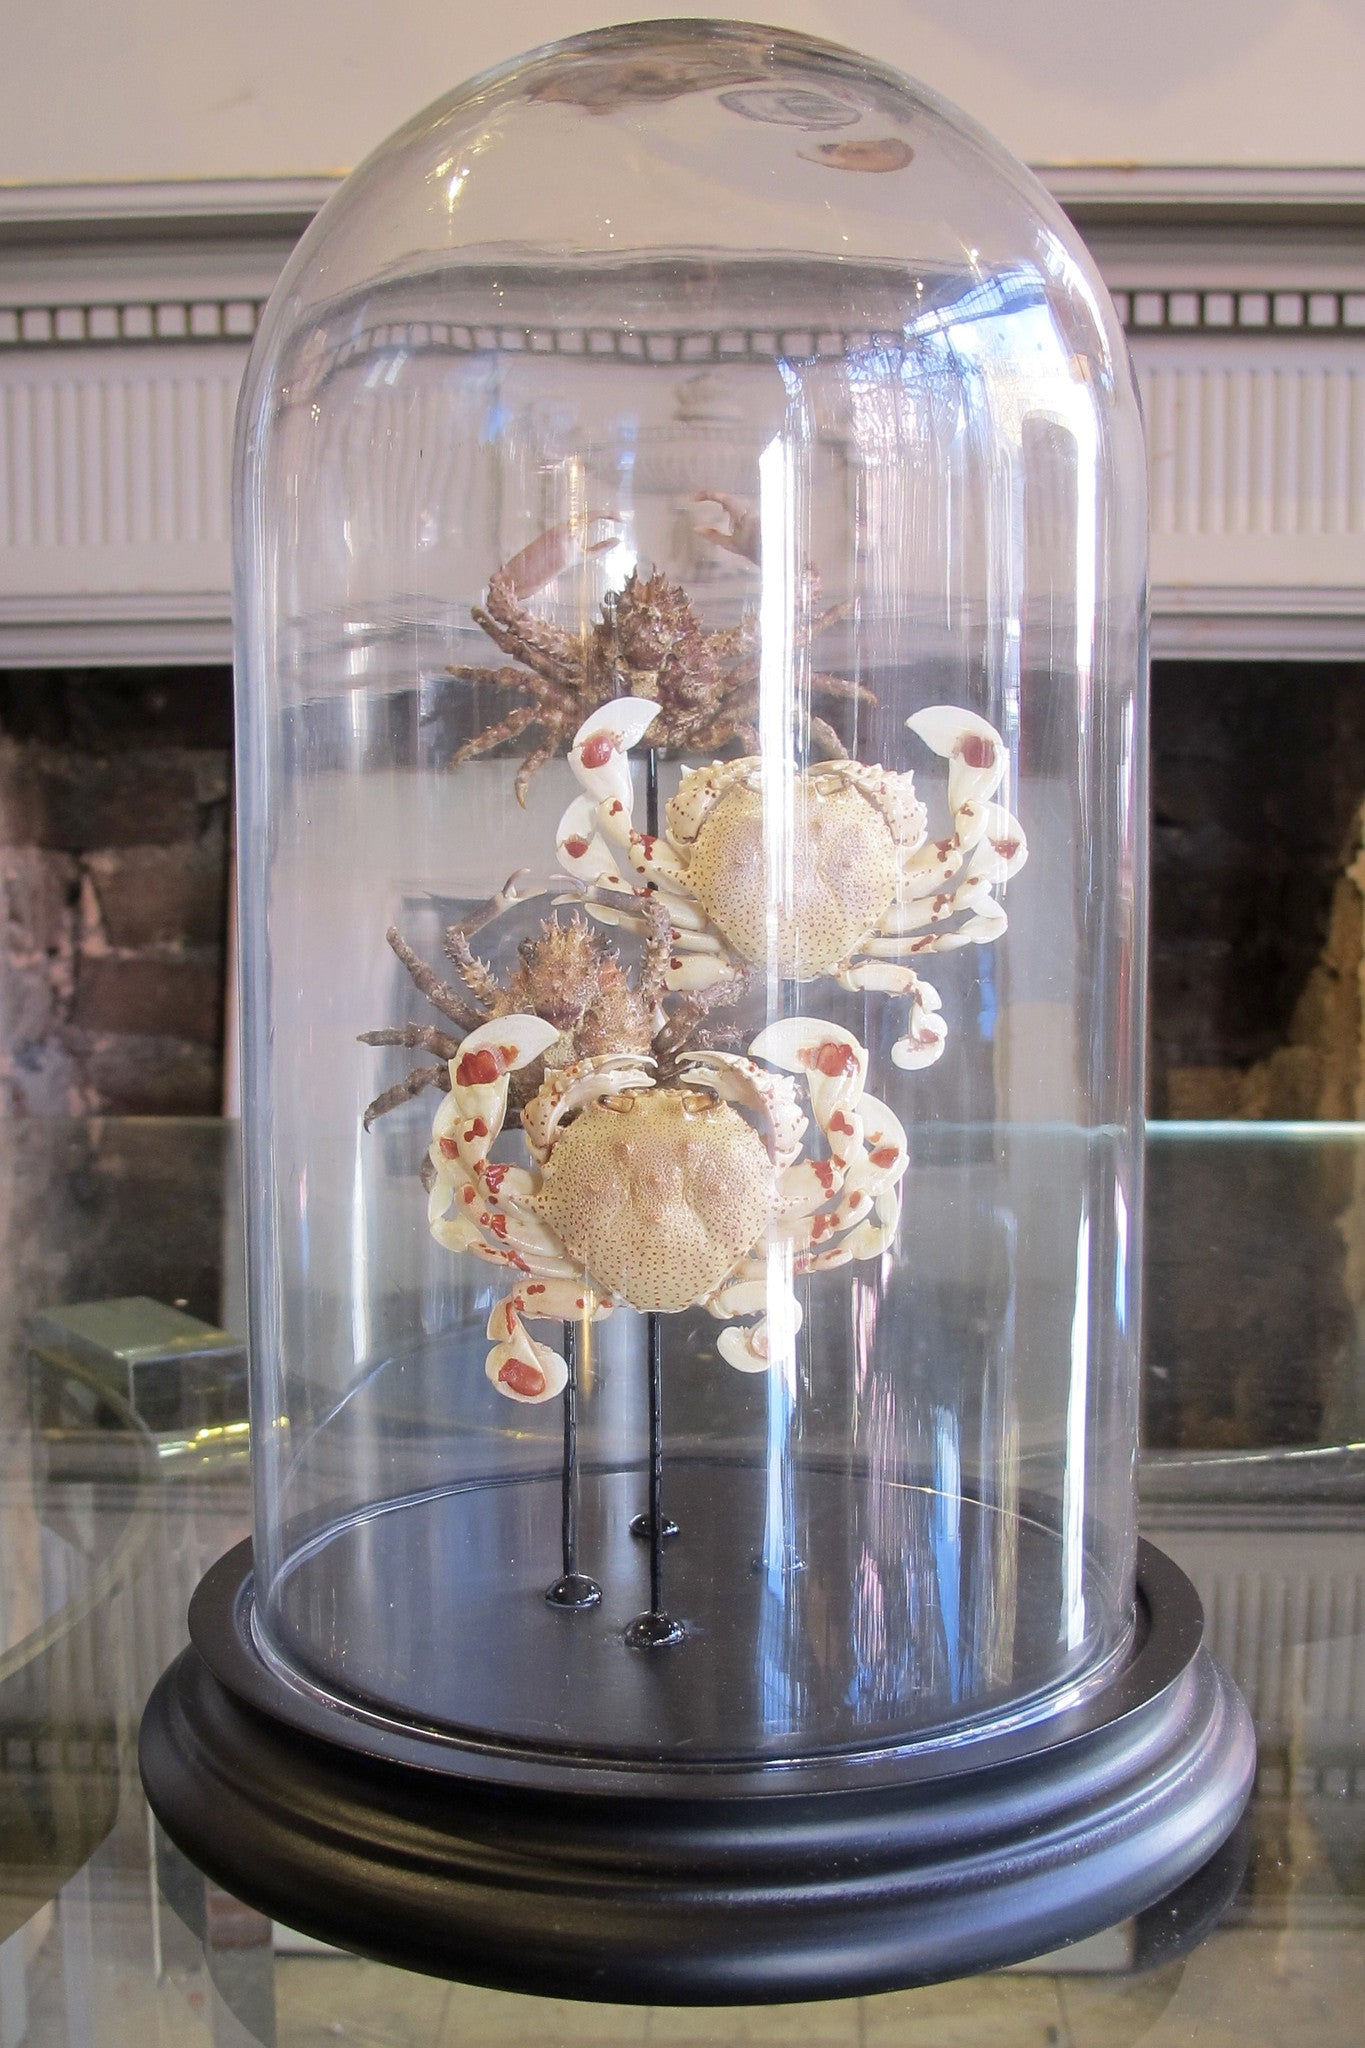 X Mounted Crabs in a Bell Jar